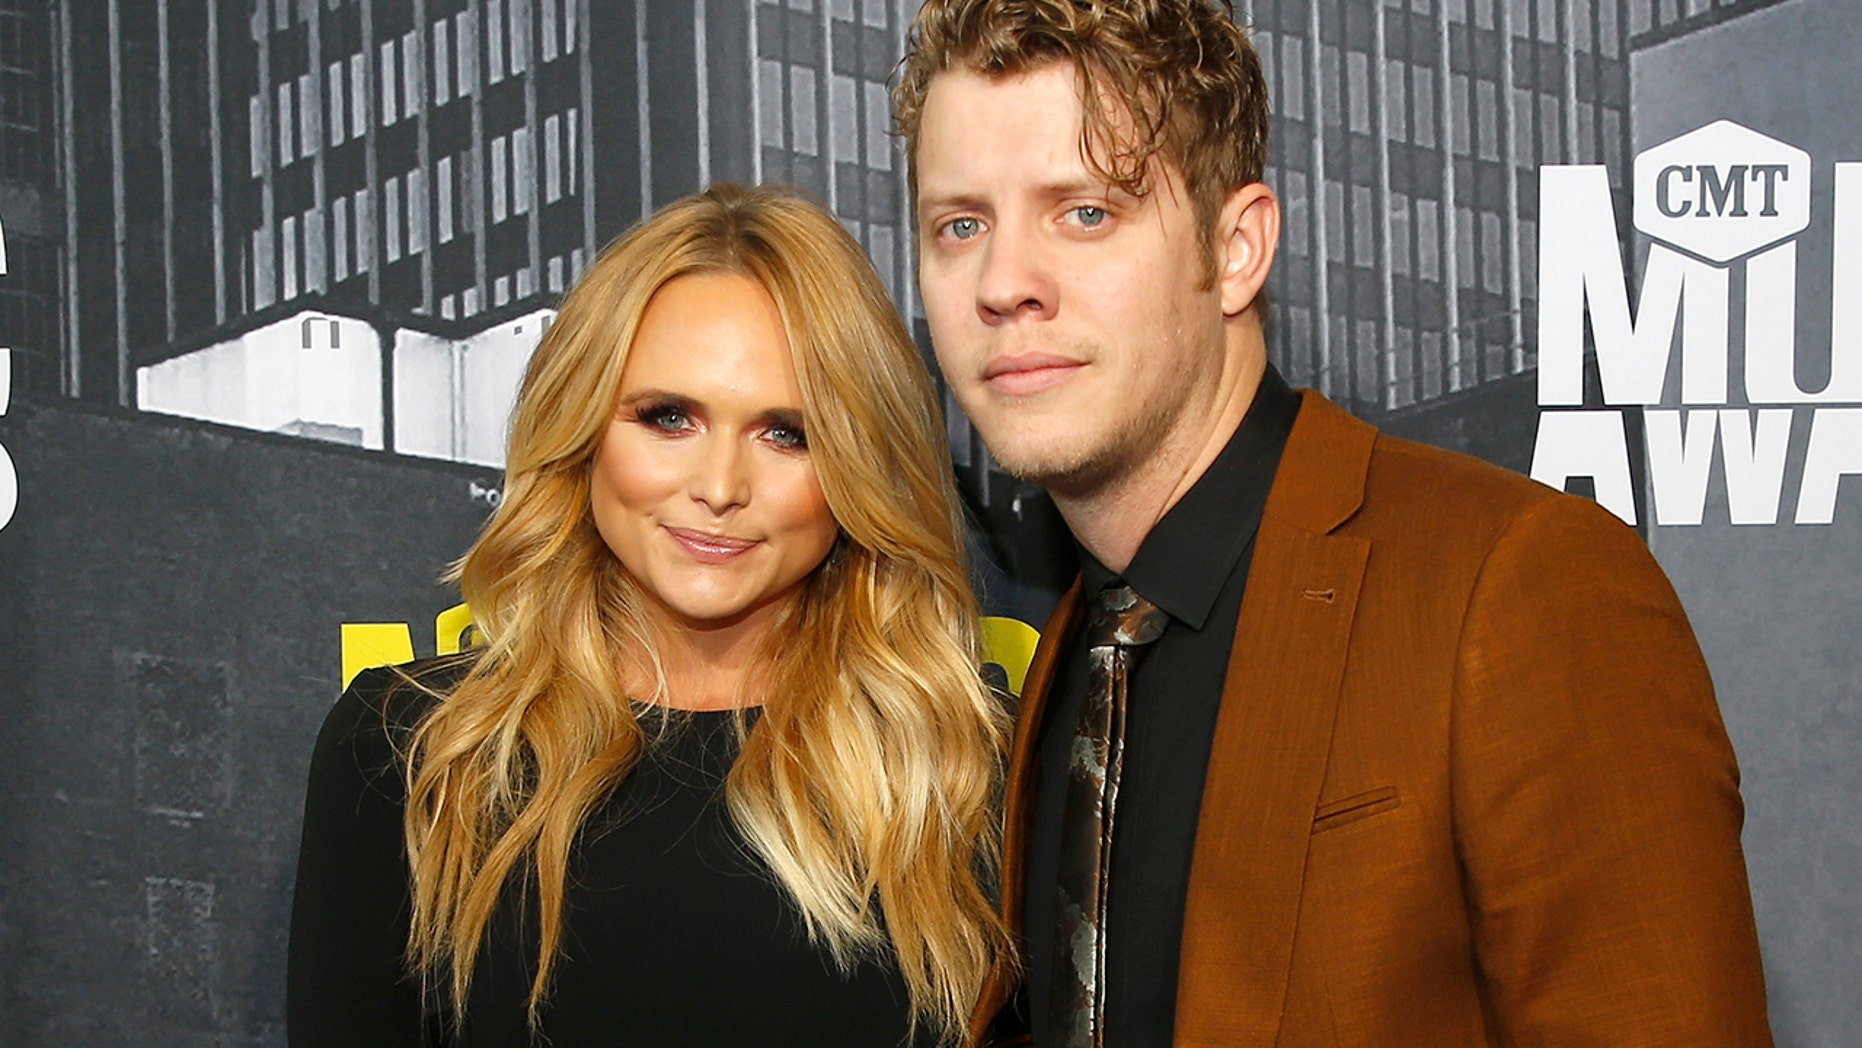 Miranda Lambert and Anderson East have reportedly split after two years of dating.